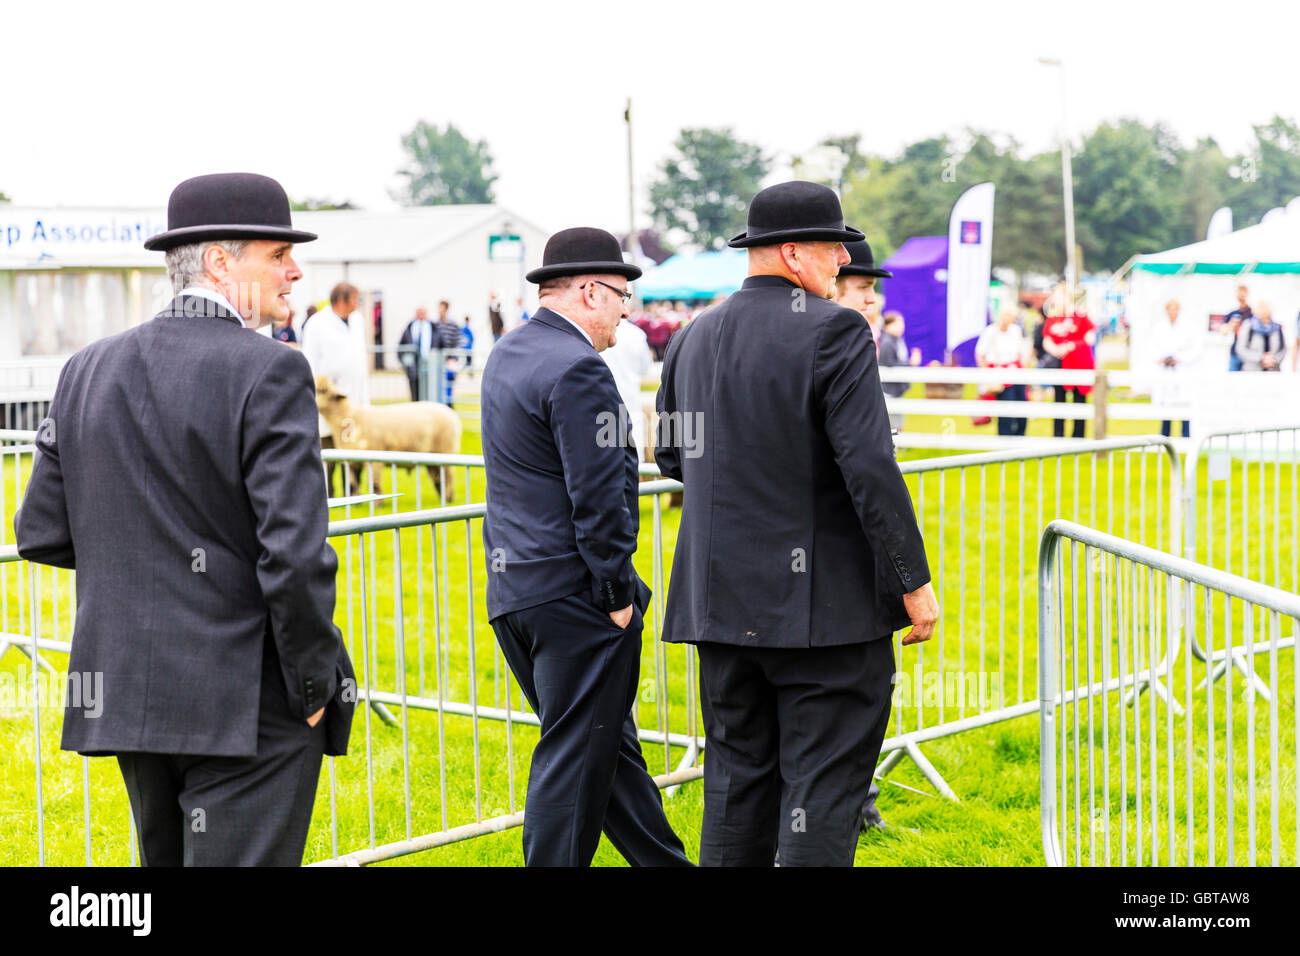 6fb5c707db8 Men in bowler hats wearing bowler hat suits suit posh attire smart smartly  dressed UK England